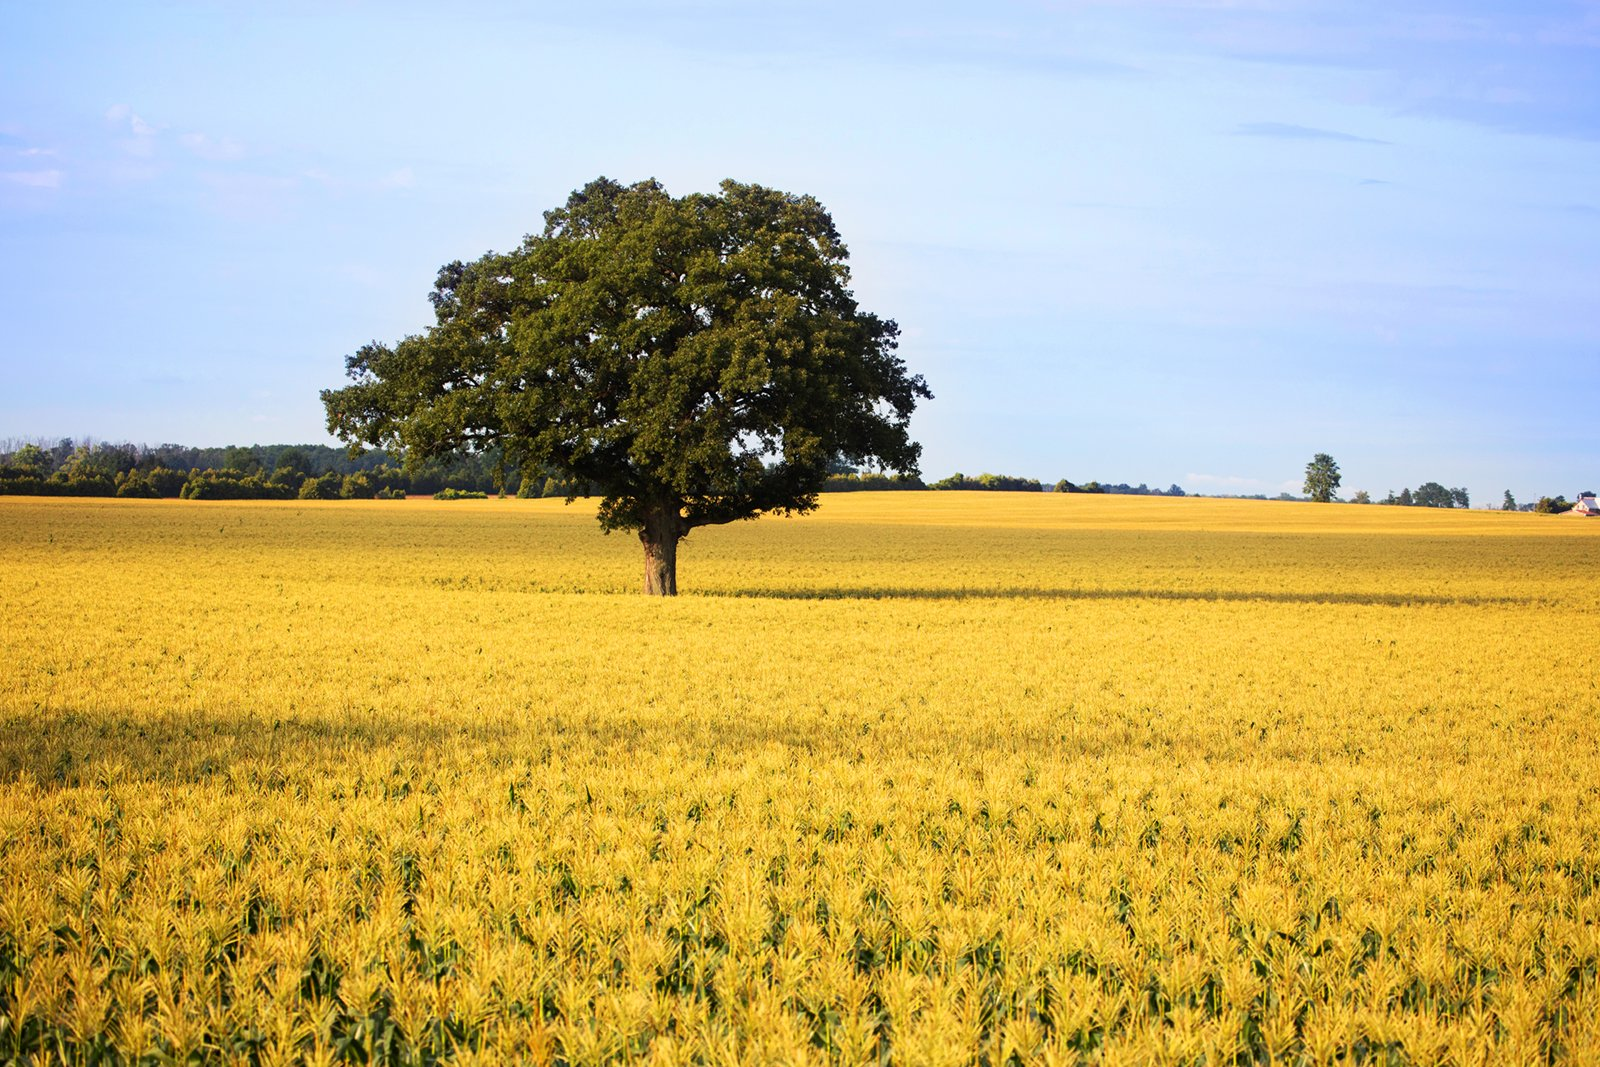 Single tree in gold-coloured field